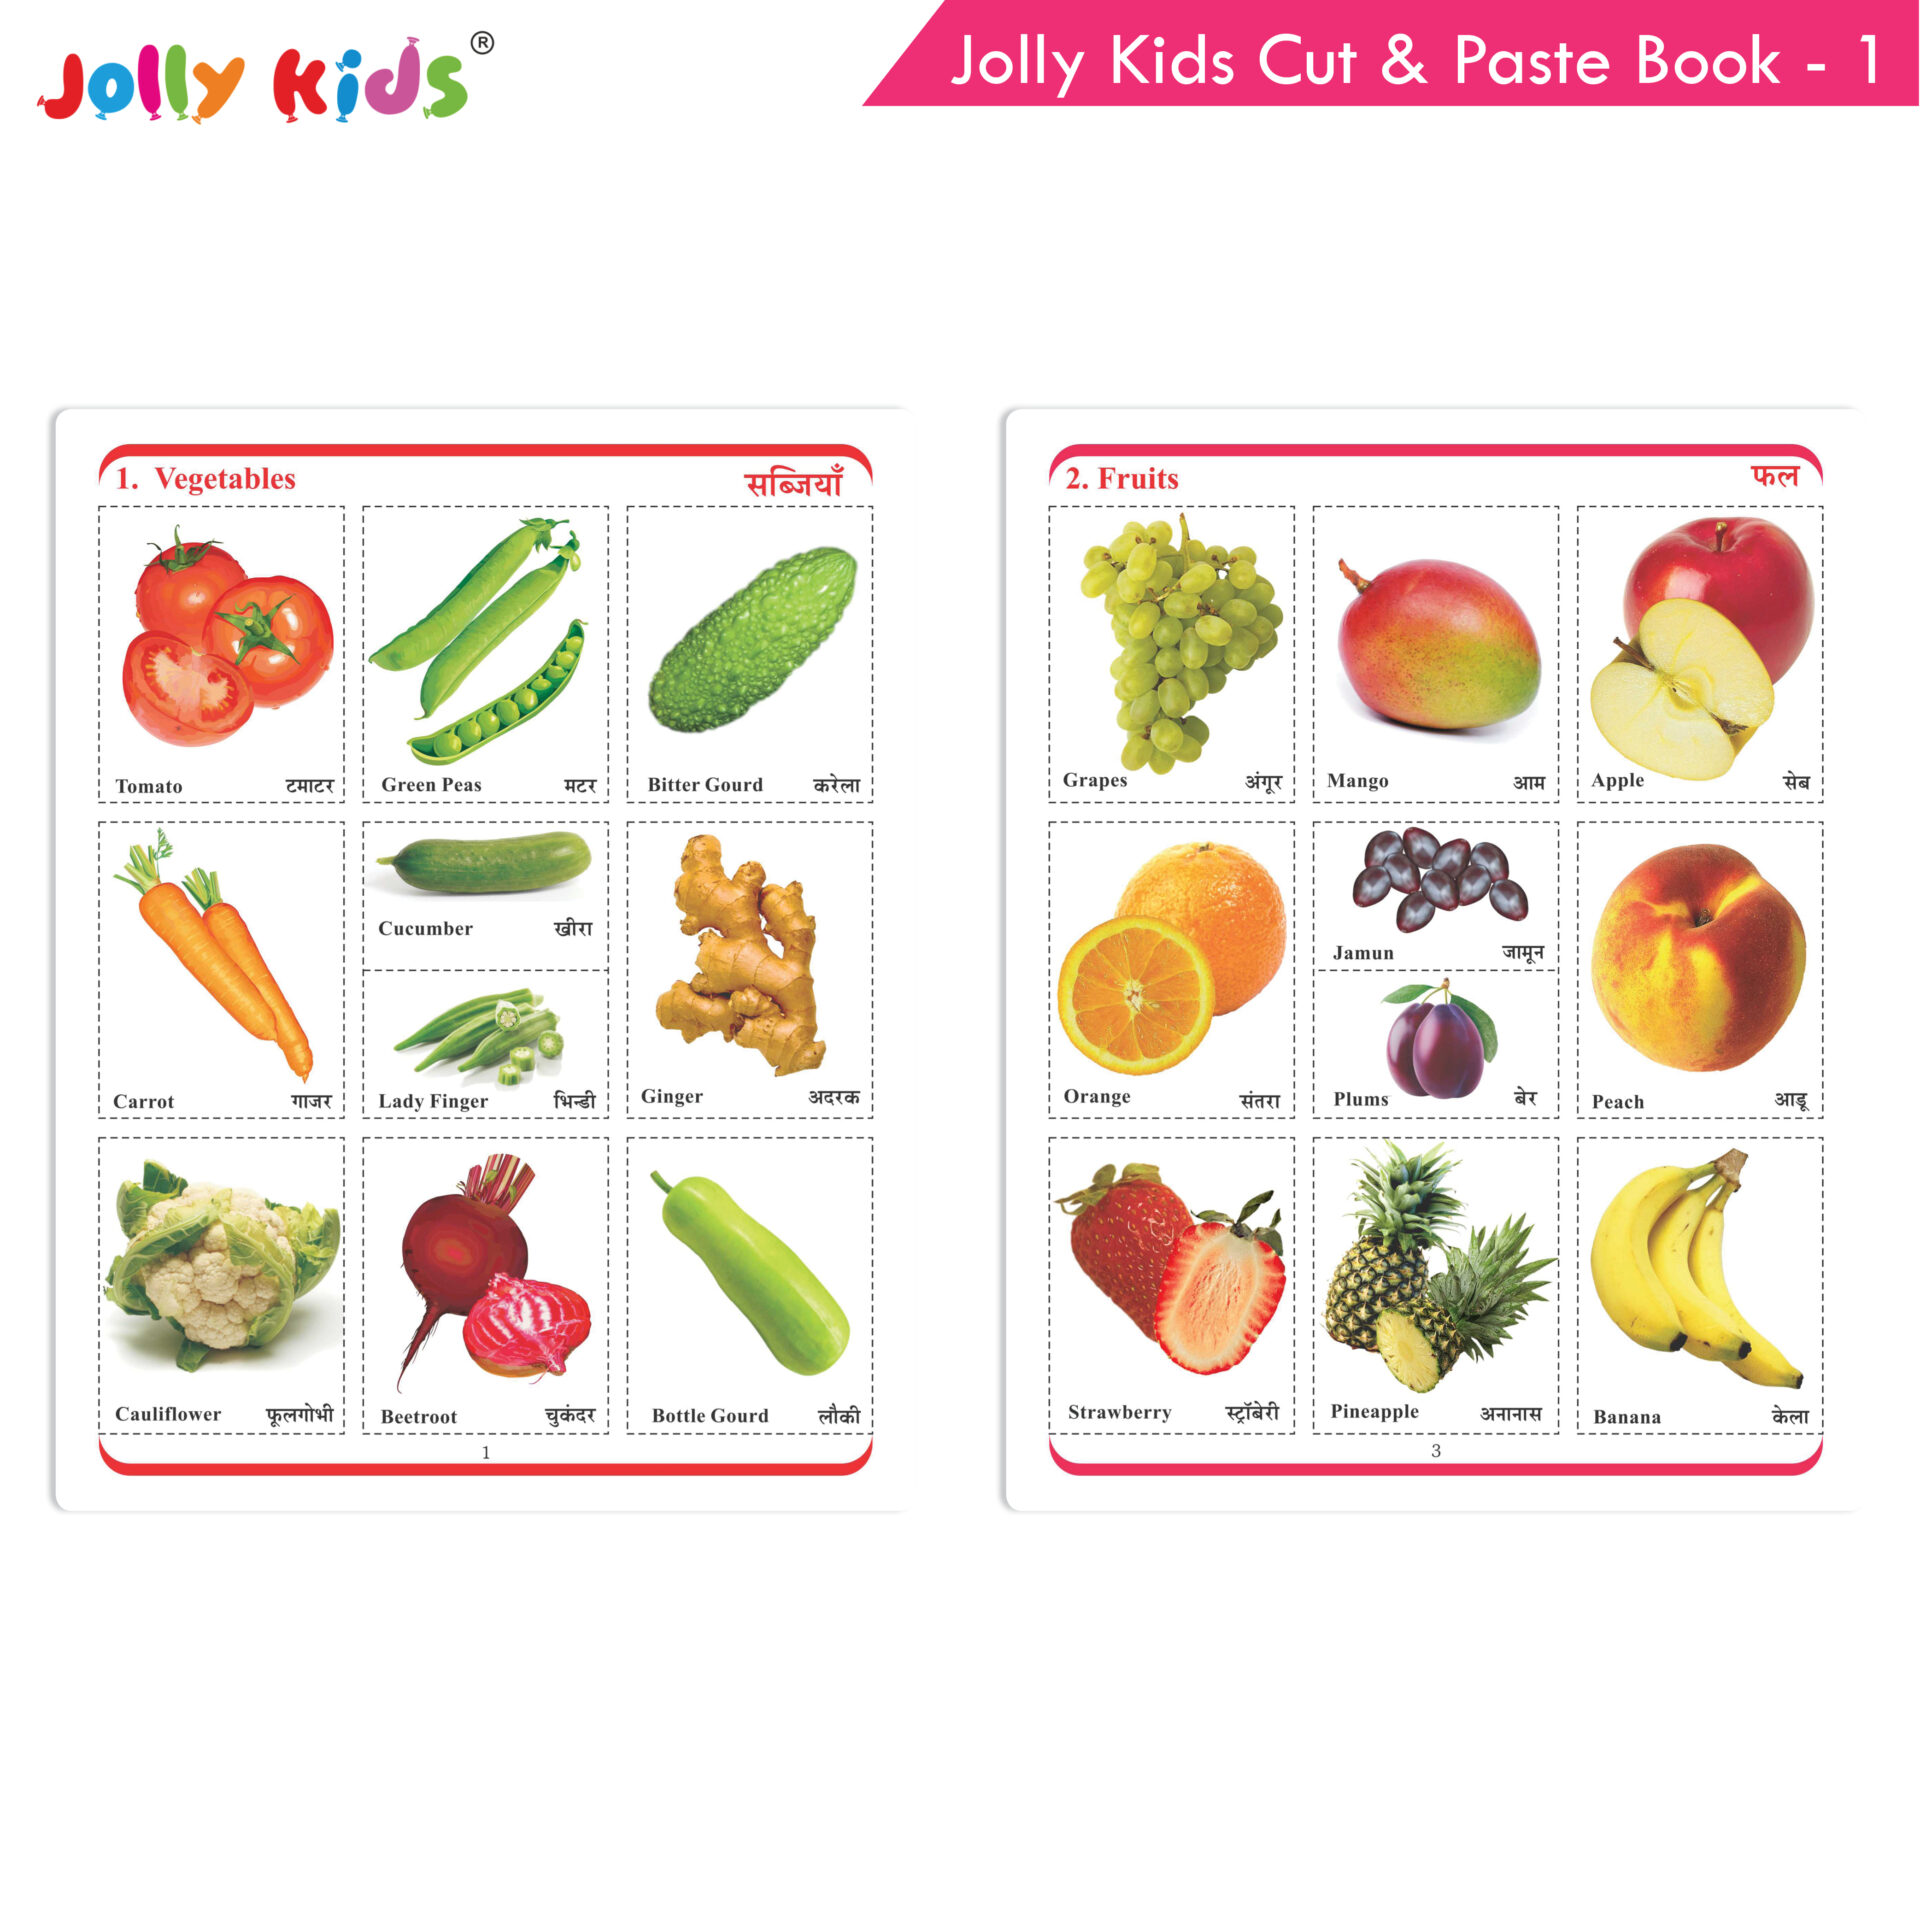 Jolly Kids Cut and Paste Book 1 3